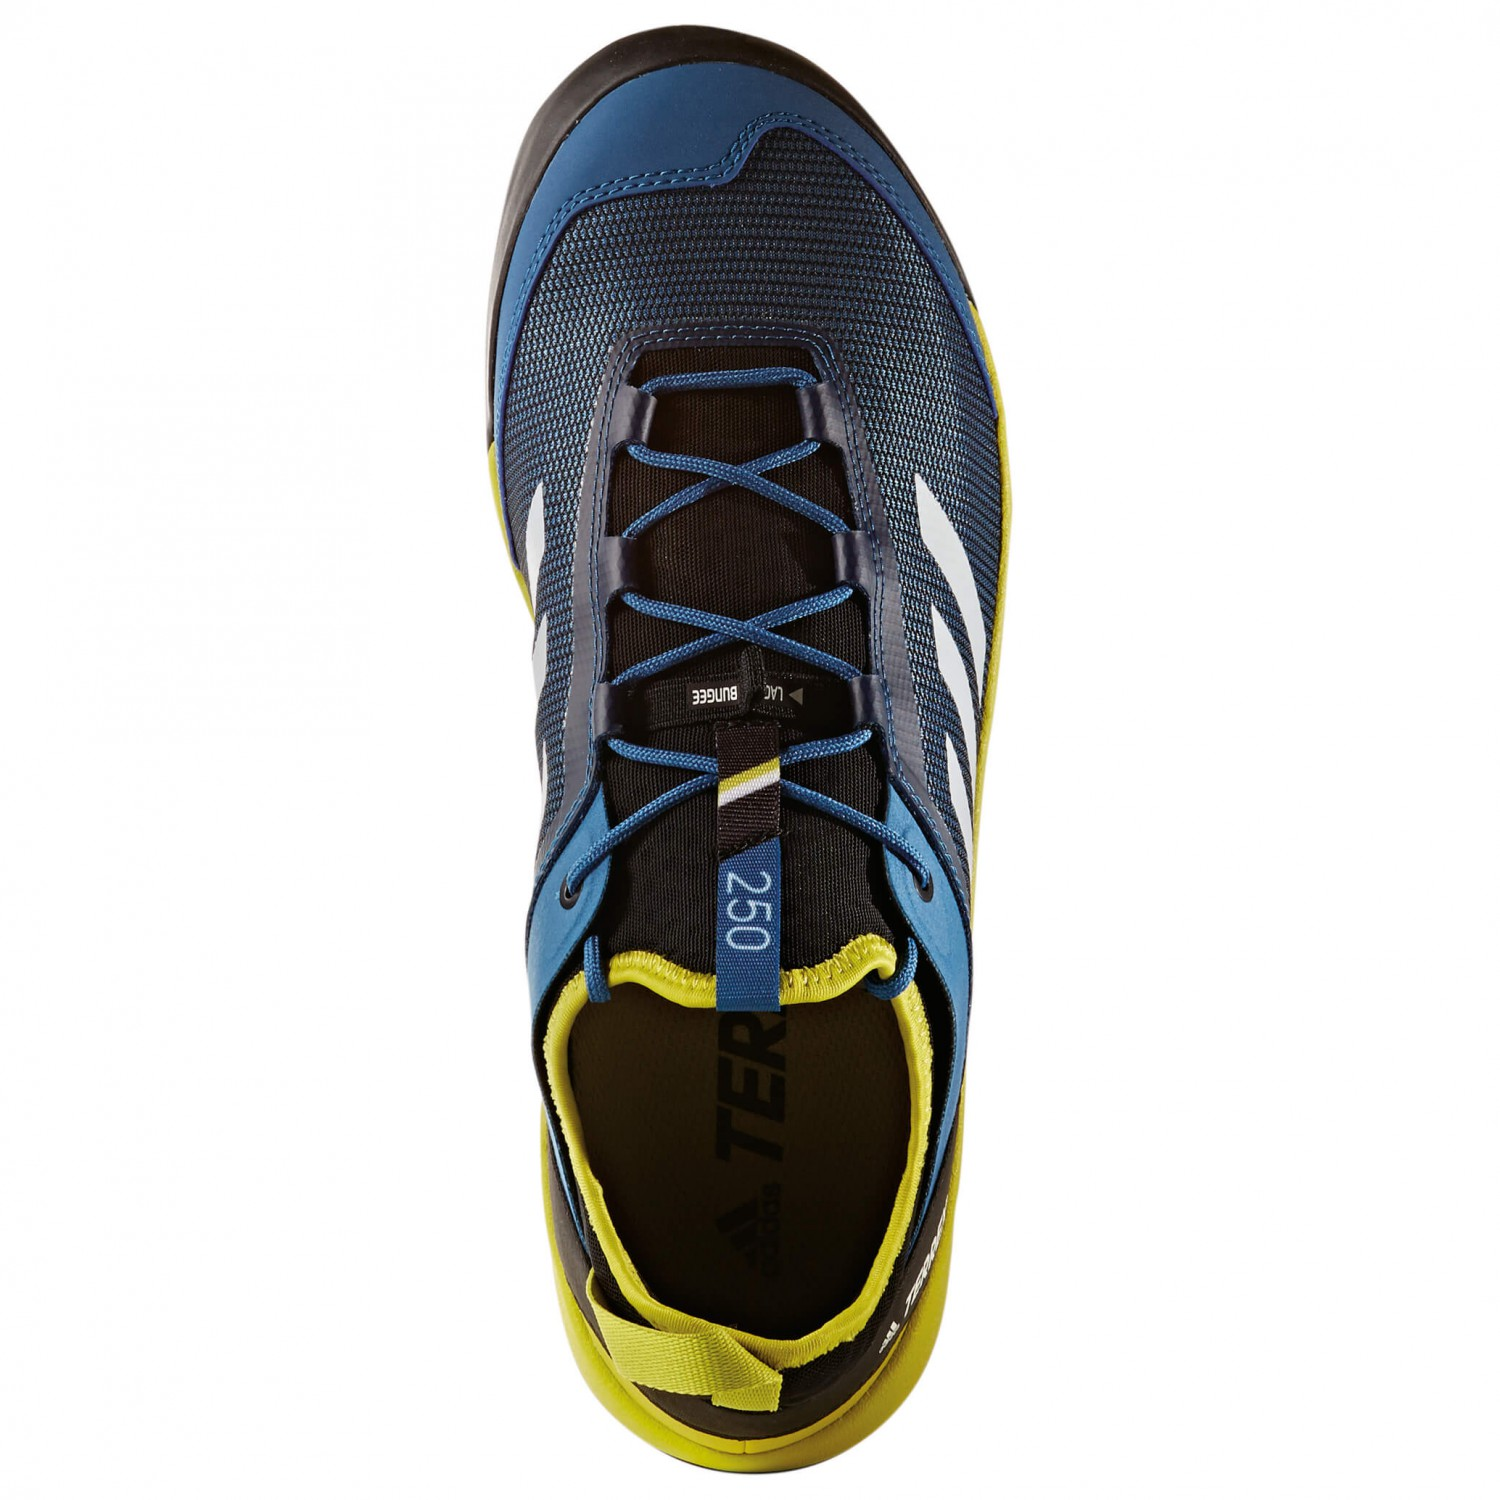 efee1795e1d52 ... adidas - Terrex Swift Solo - Approach shoes ...